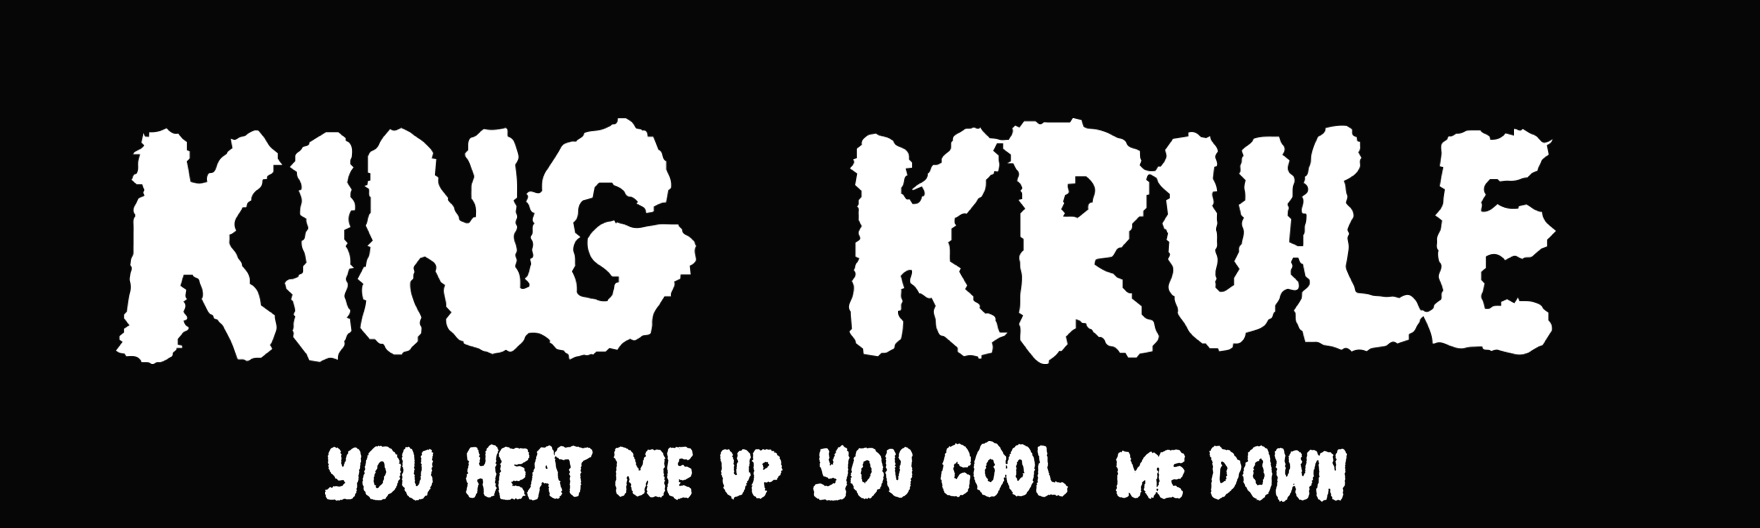 King Krule UK logo